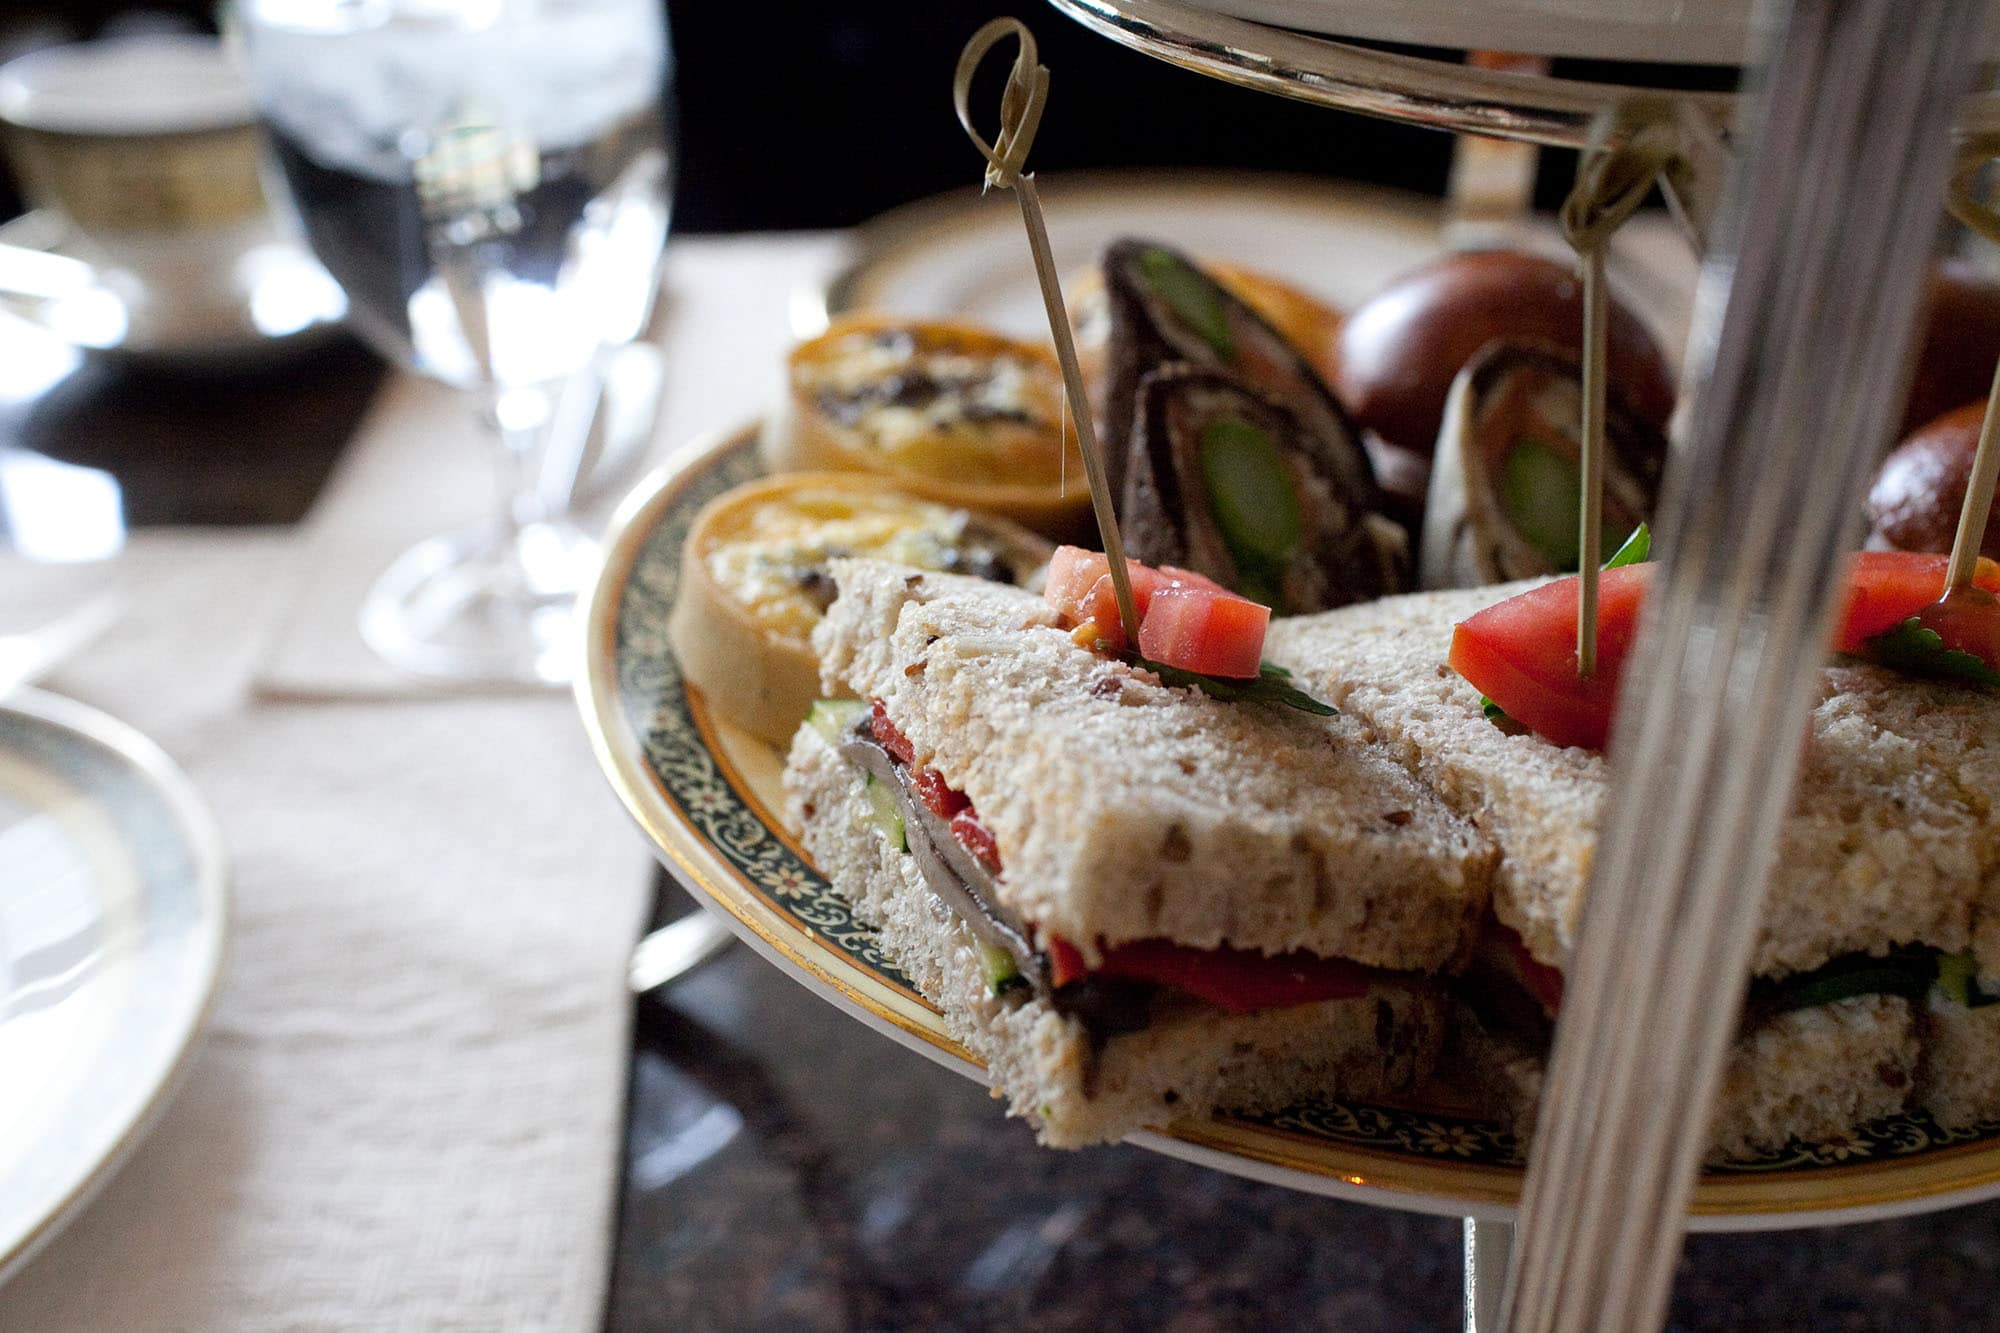 Tea sandwiches at the Lobby at The Peninsula in Chicago, Illinois.